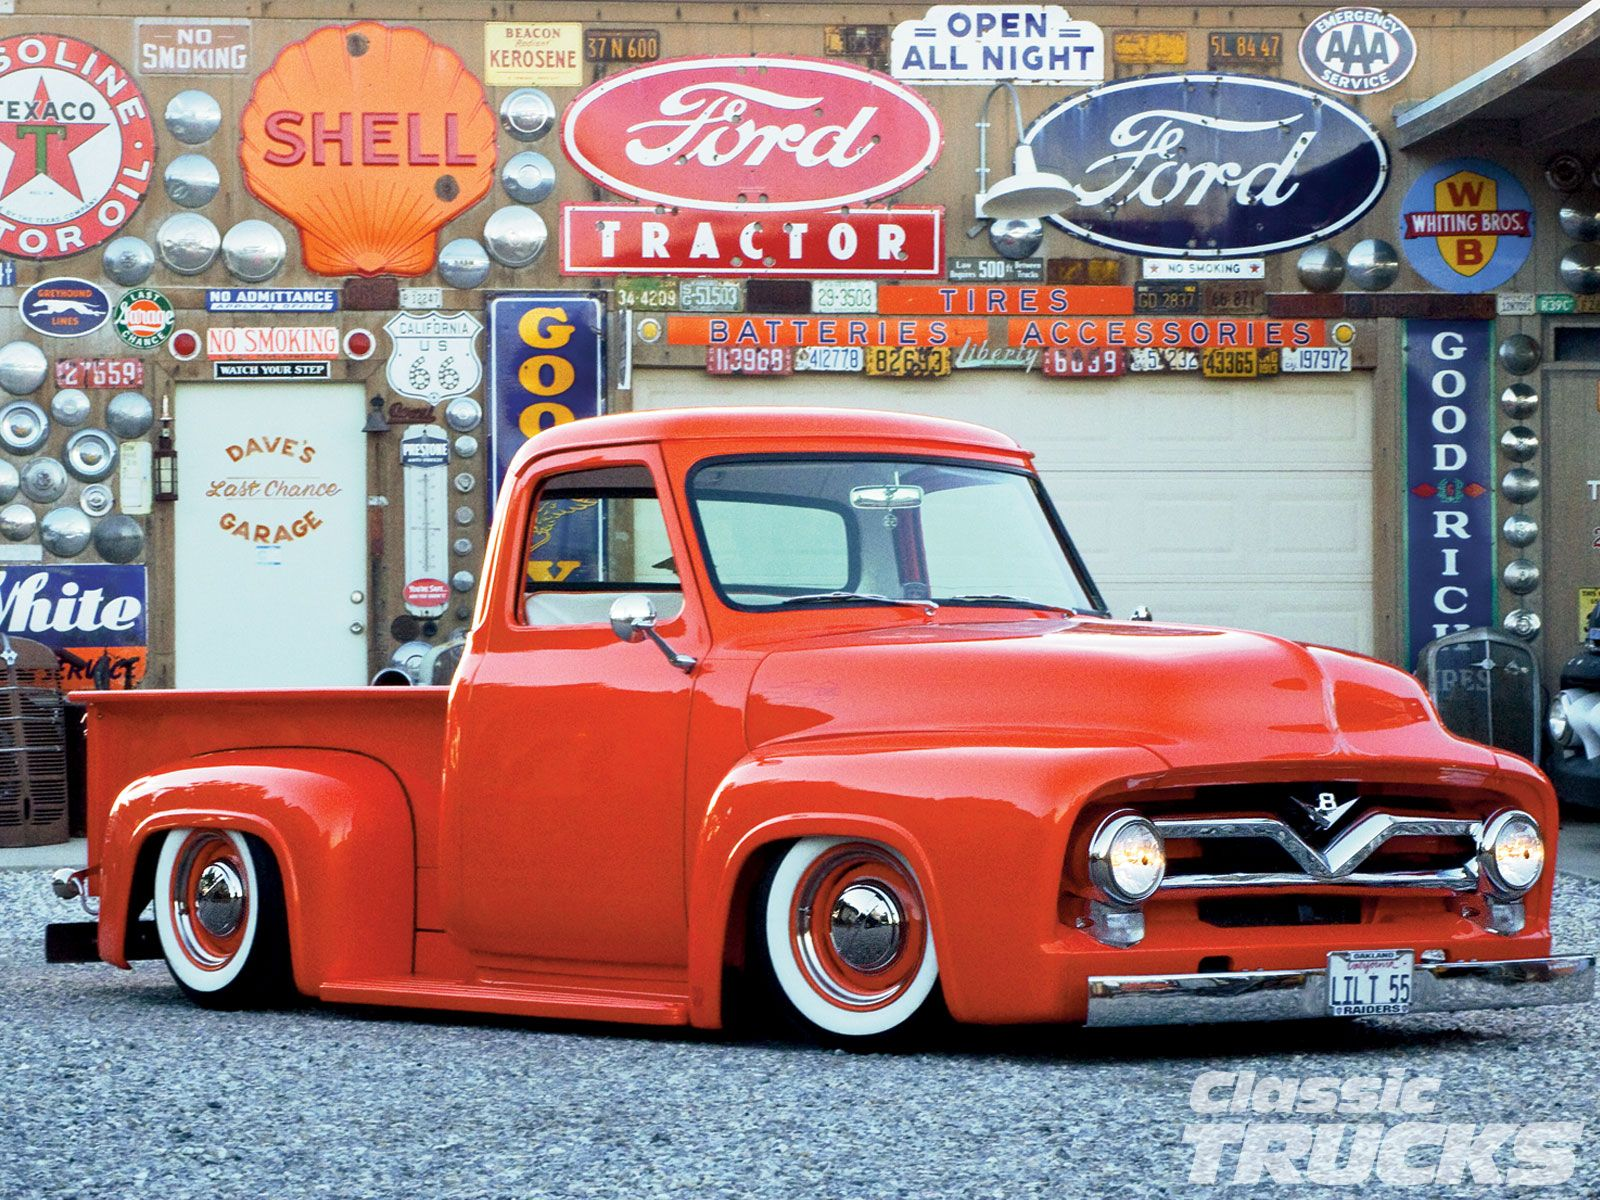 1955 ford f100 street rod truck sold - 1955 Ford F 100 Like Going Fast Call Or Click